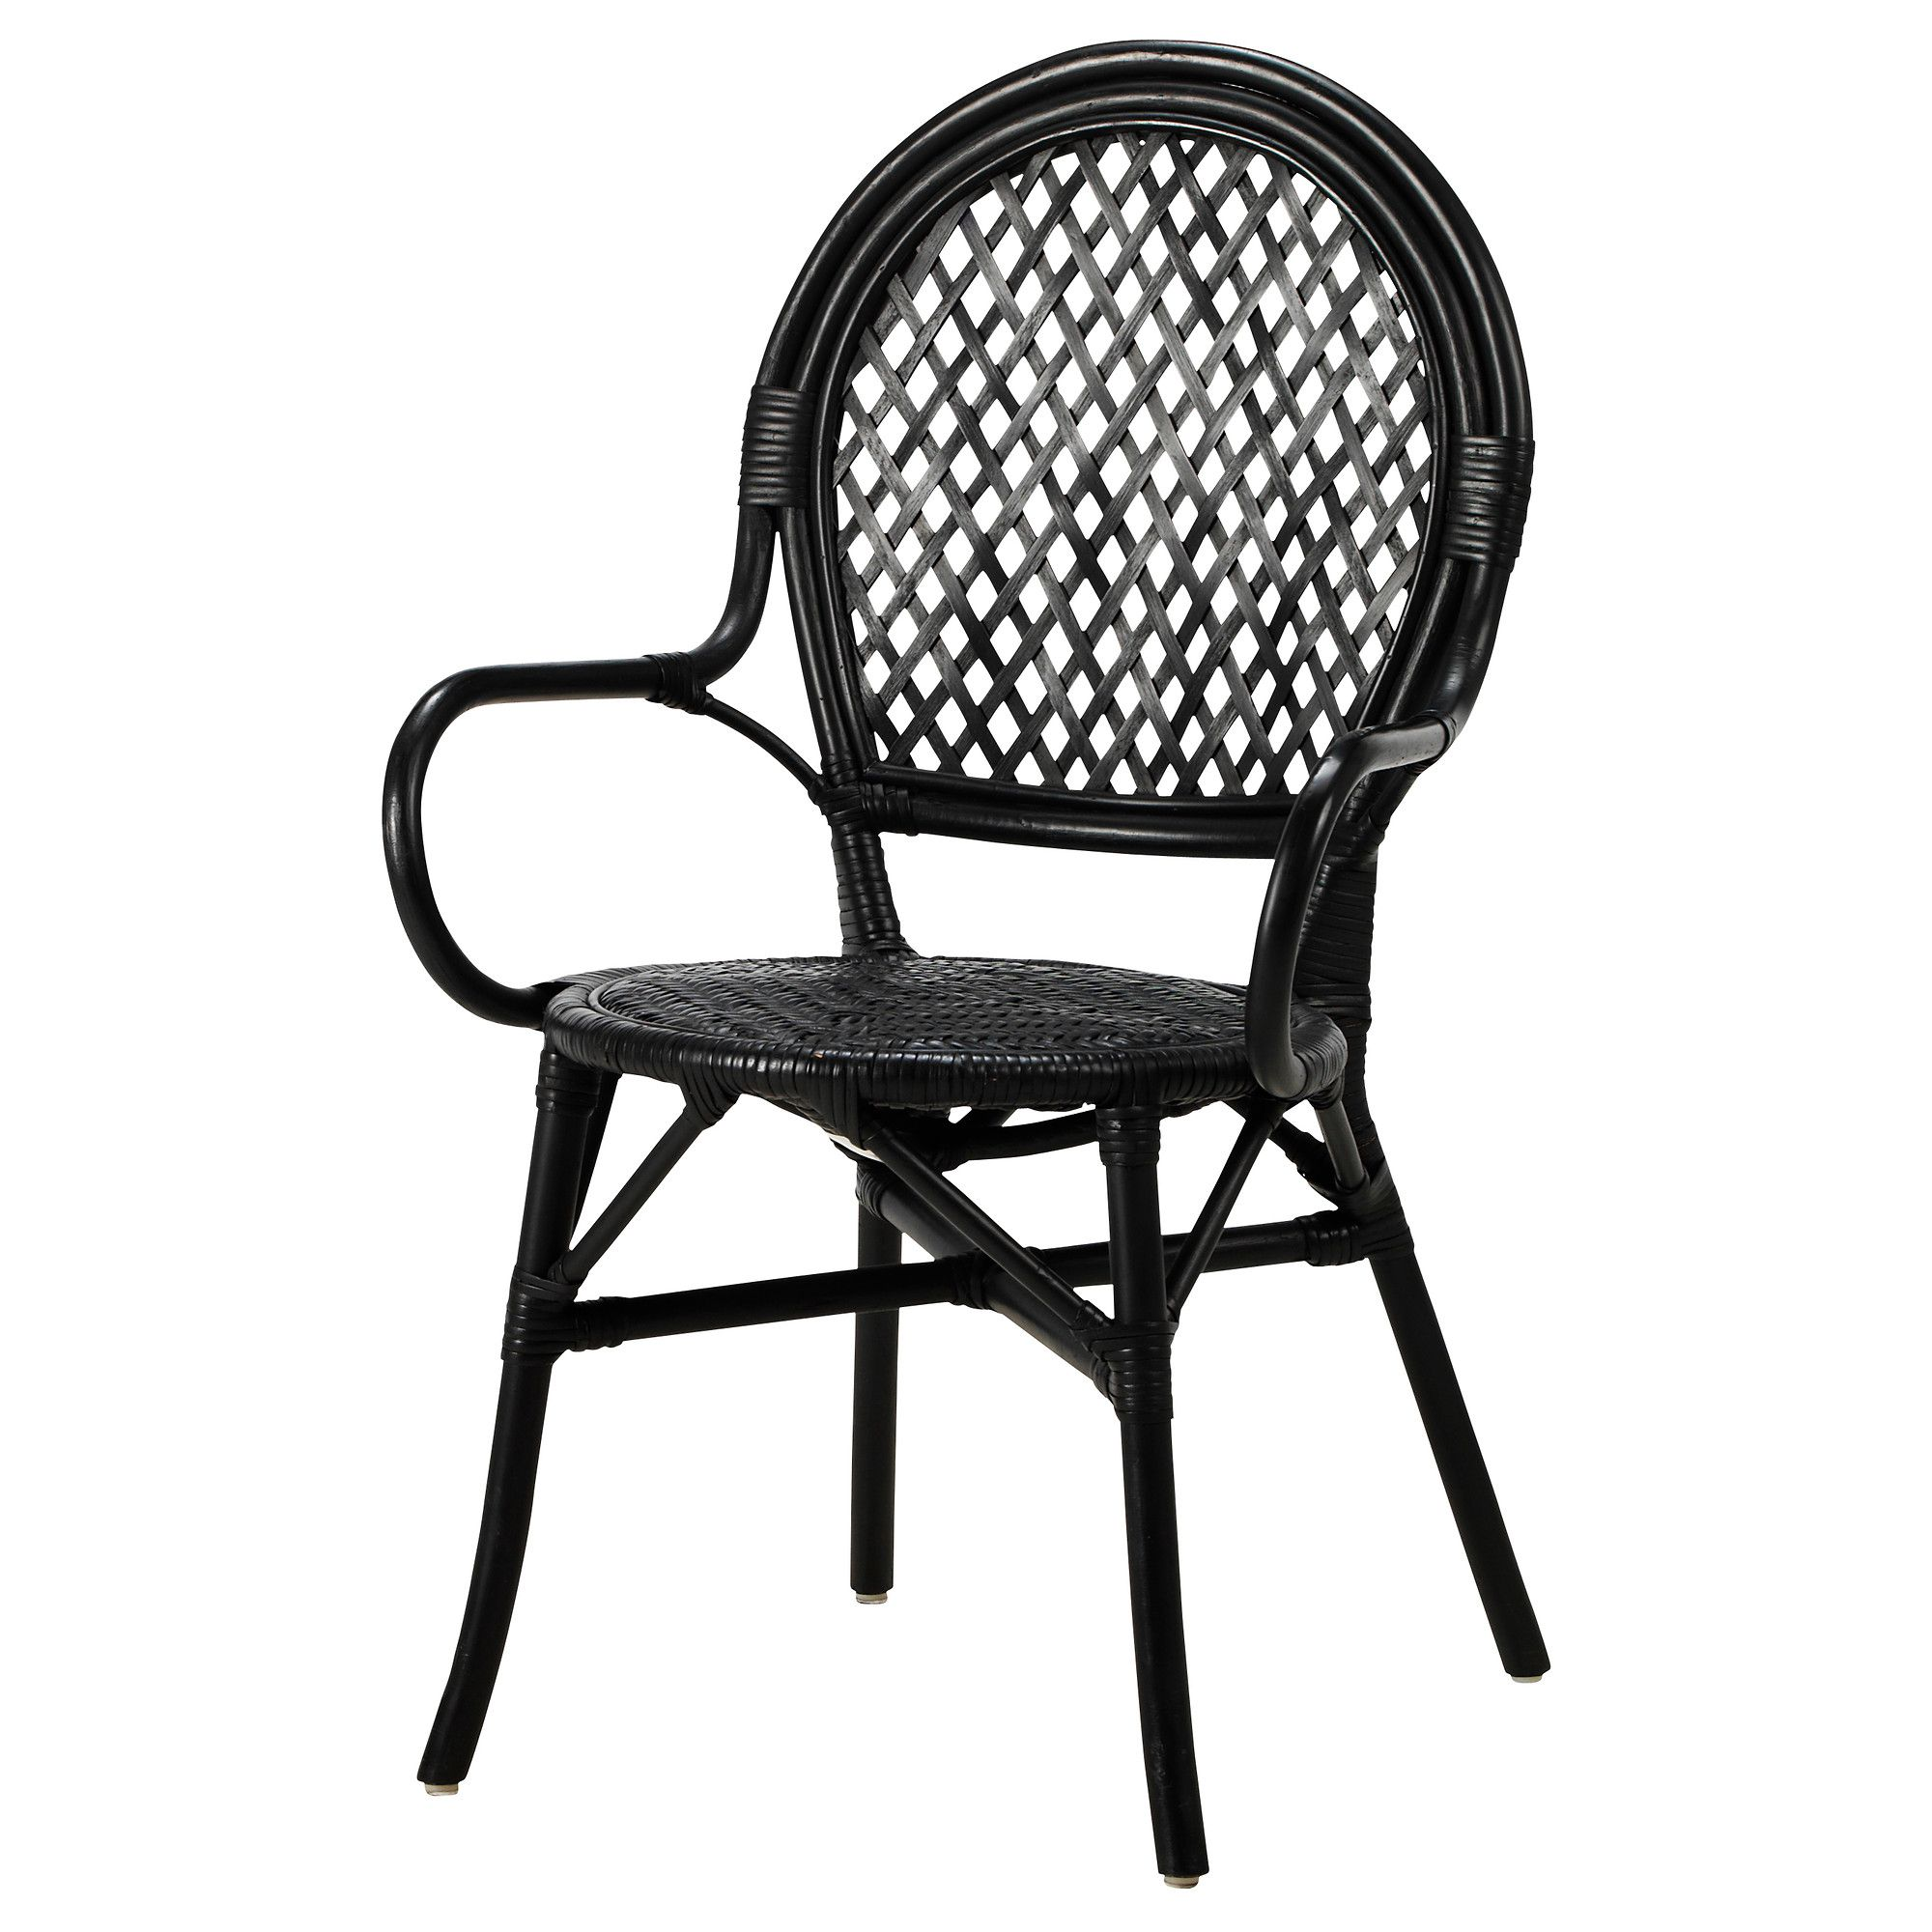 Charming IKEA ÄLMSTA Chair Rattan/black Each Piece Of Furniture Is Unique As It Is  Handmade.